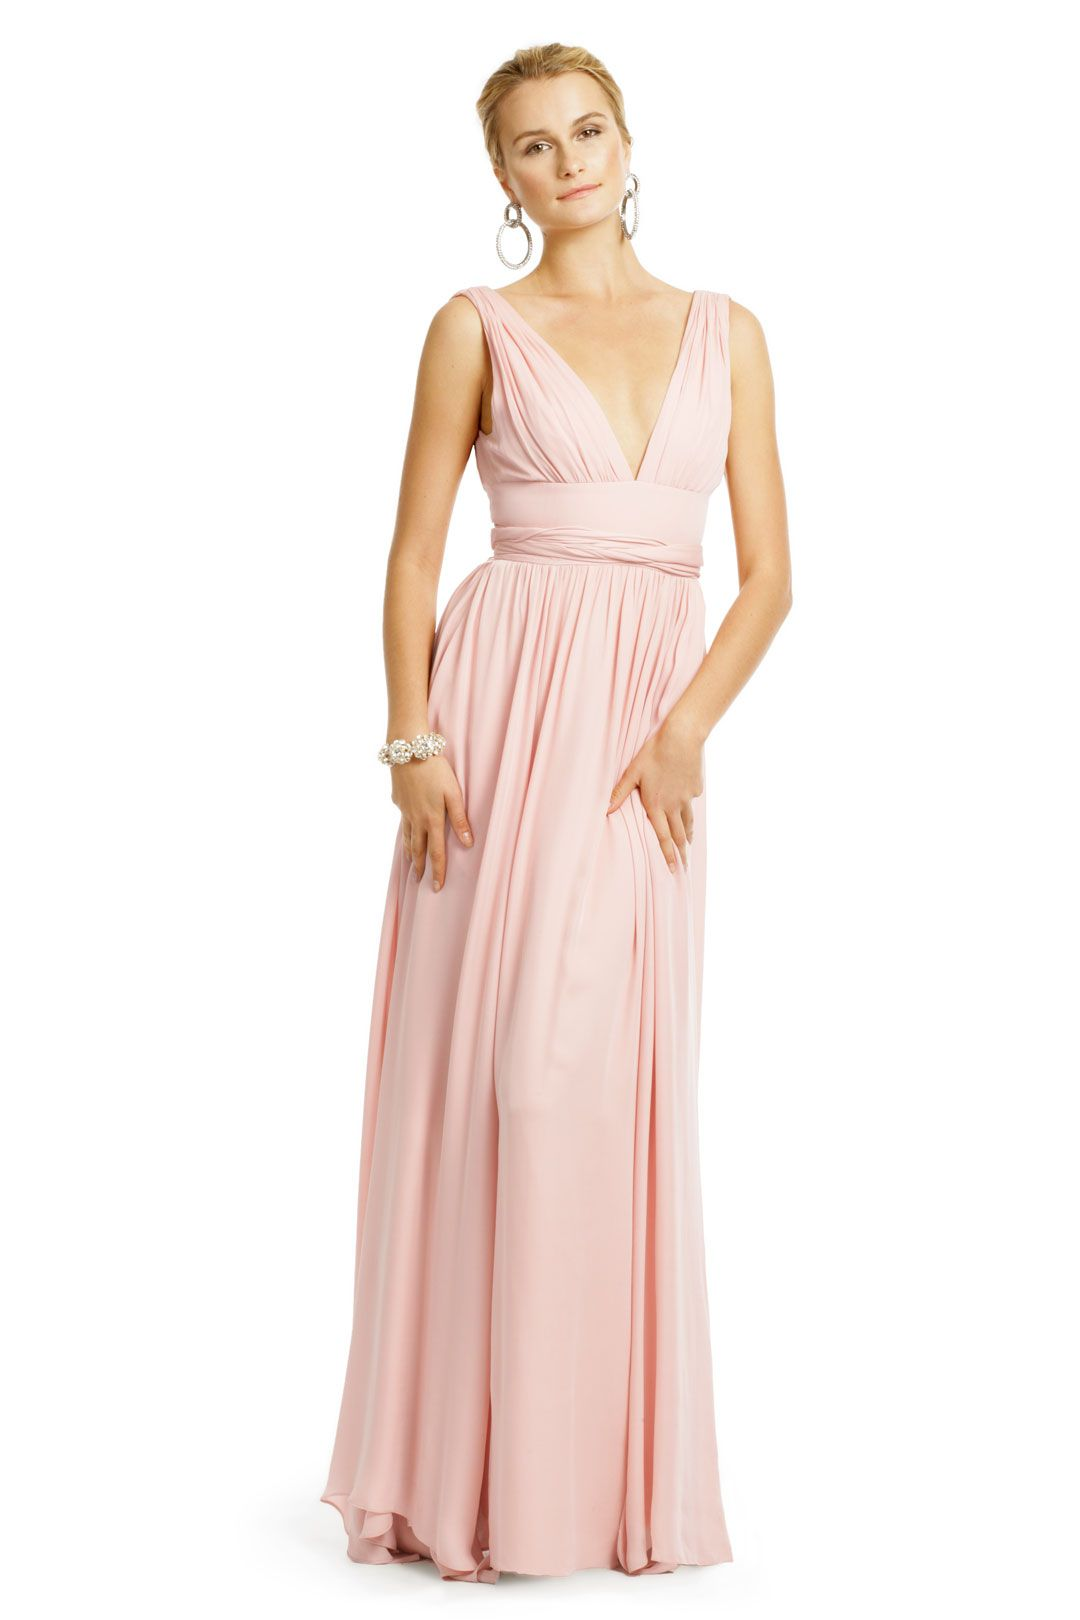 Halston Heritage Capri Romance Gown: This site lets you rent ...